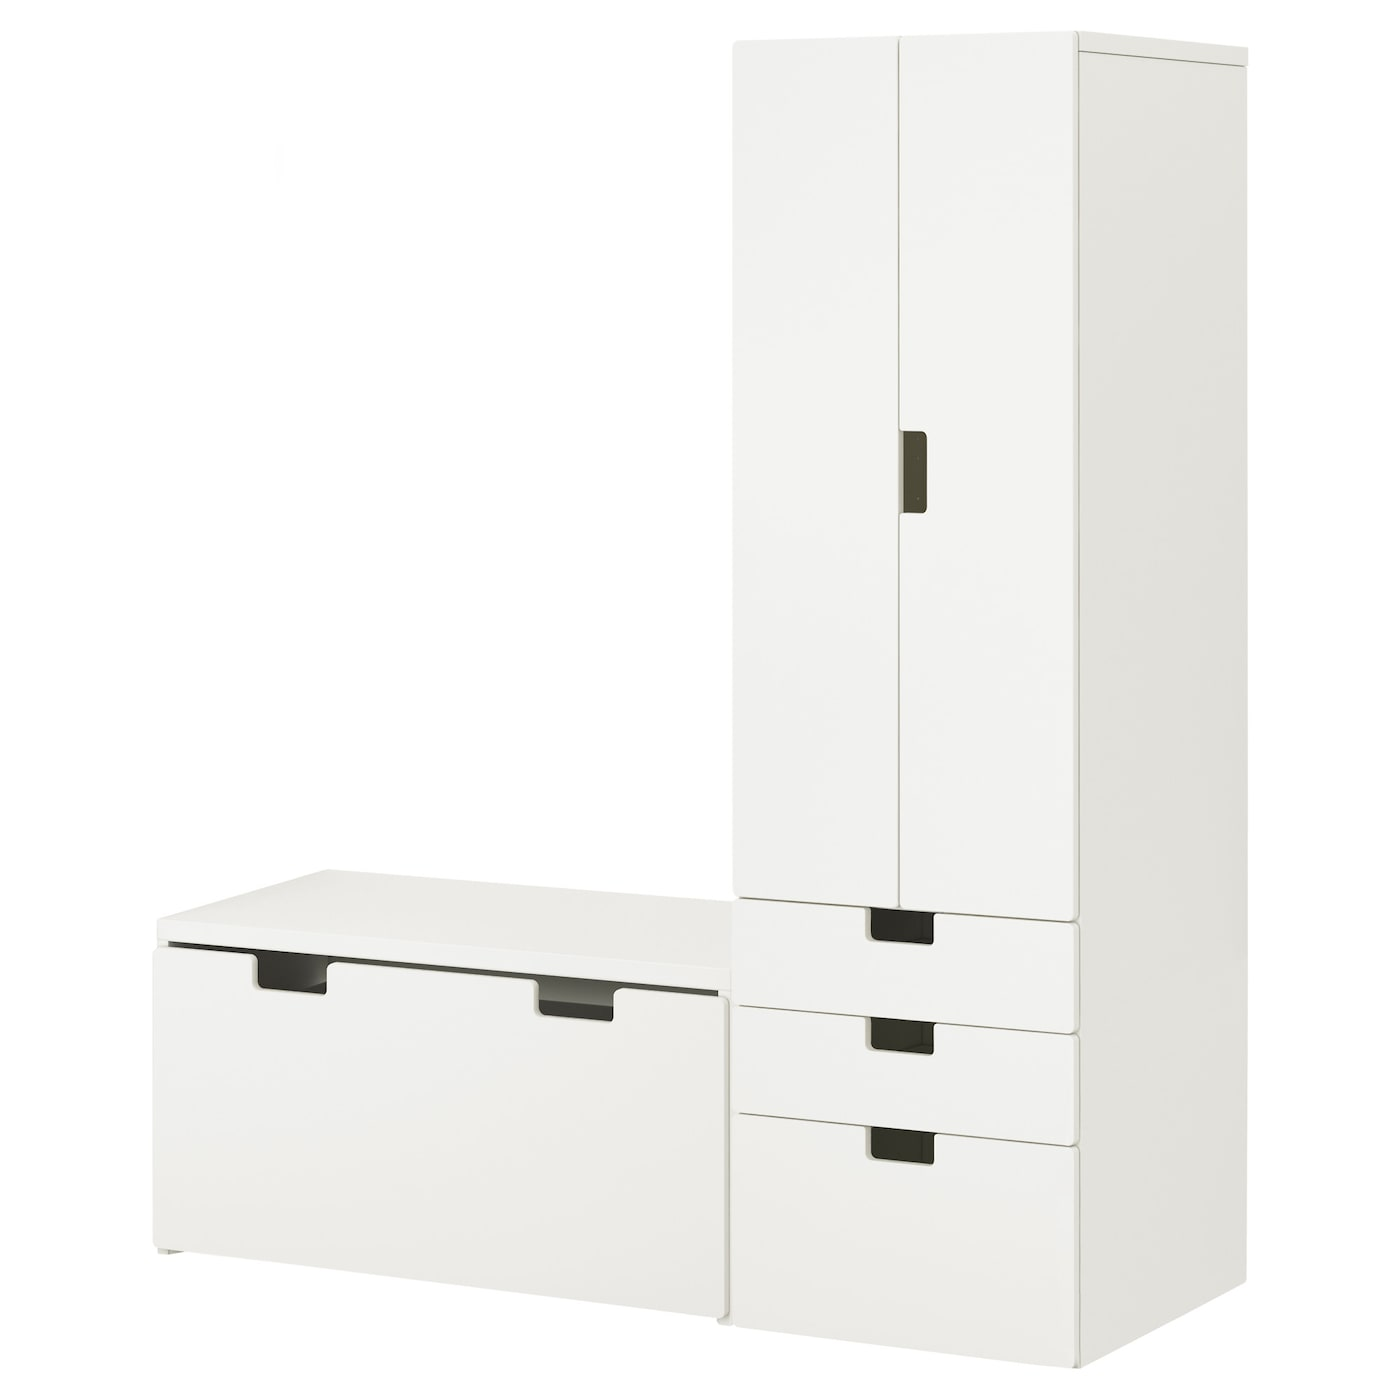 Stuva Stuva Malad White White Wardrobe With Storage Bench Ikea